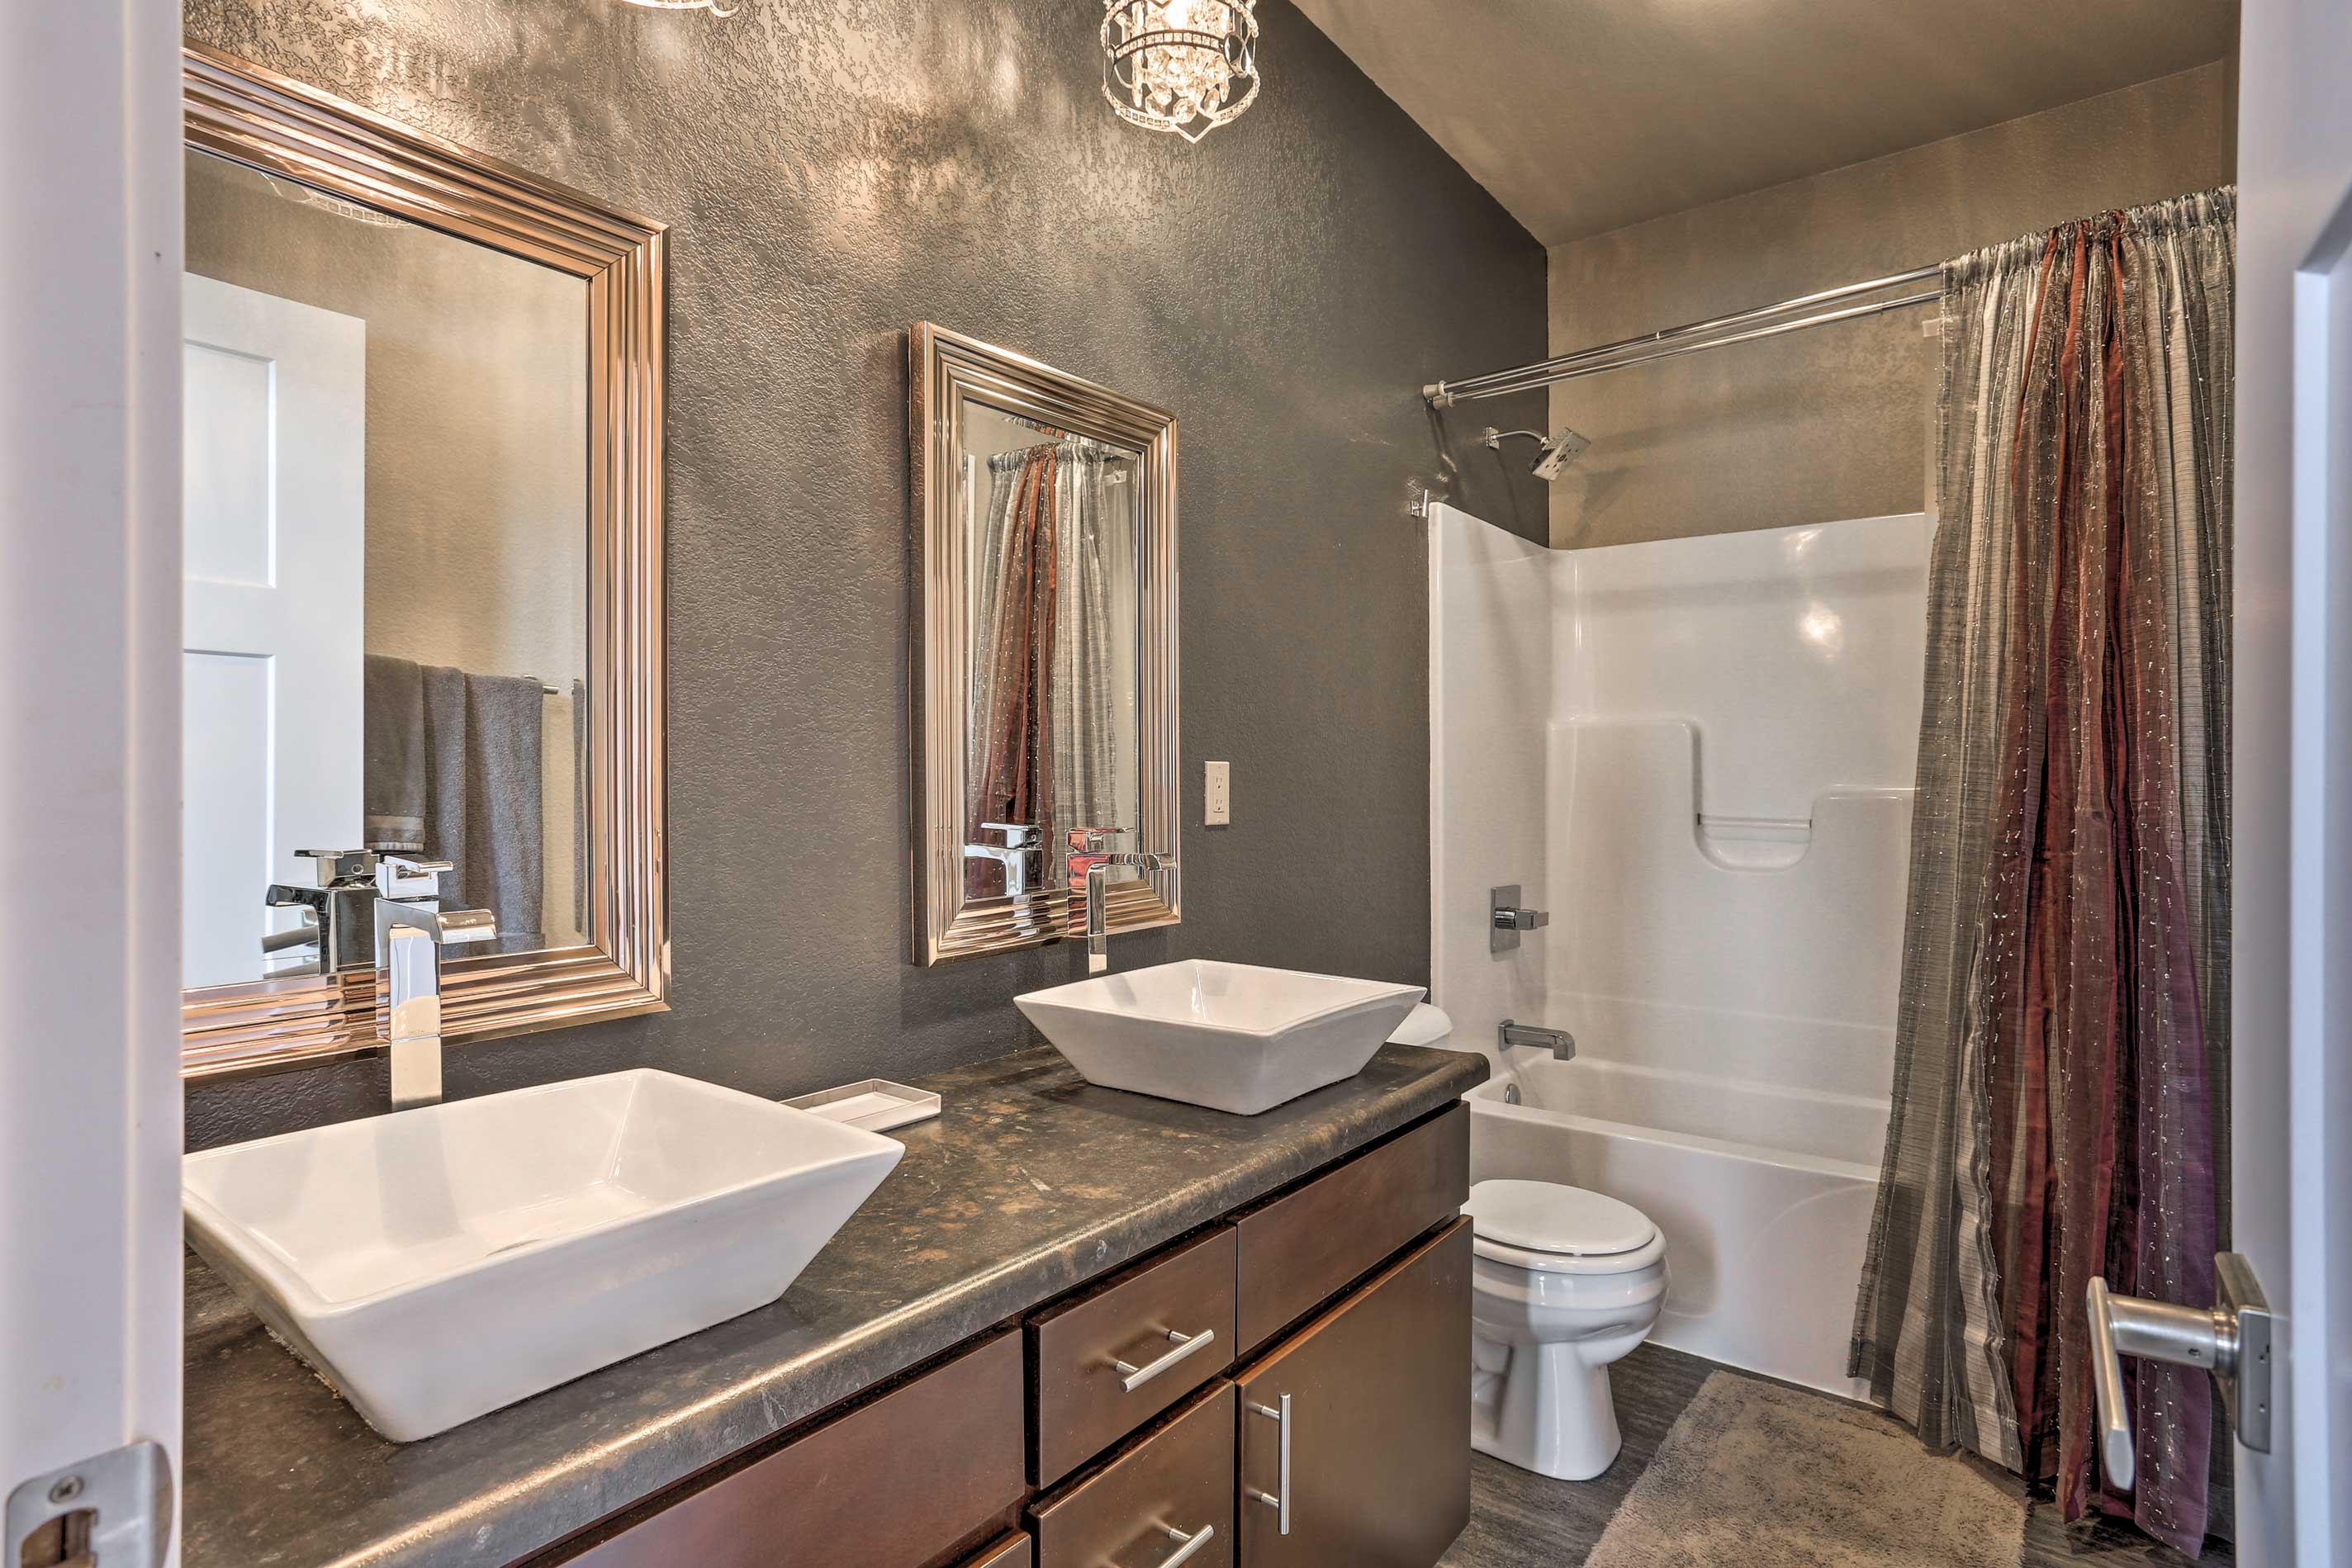 This second bathroom features dual sinks and a shower/tub combo.